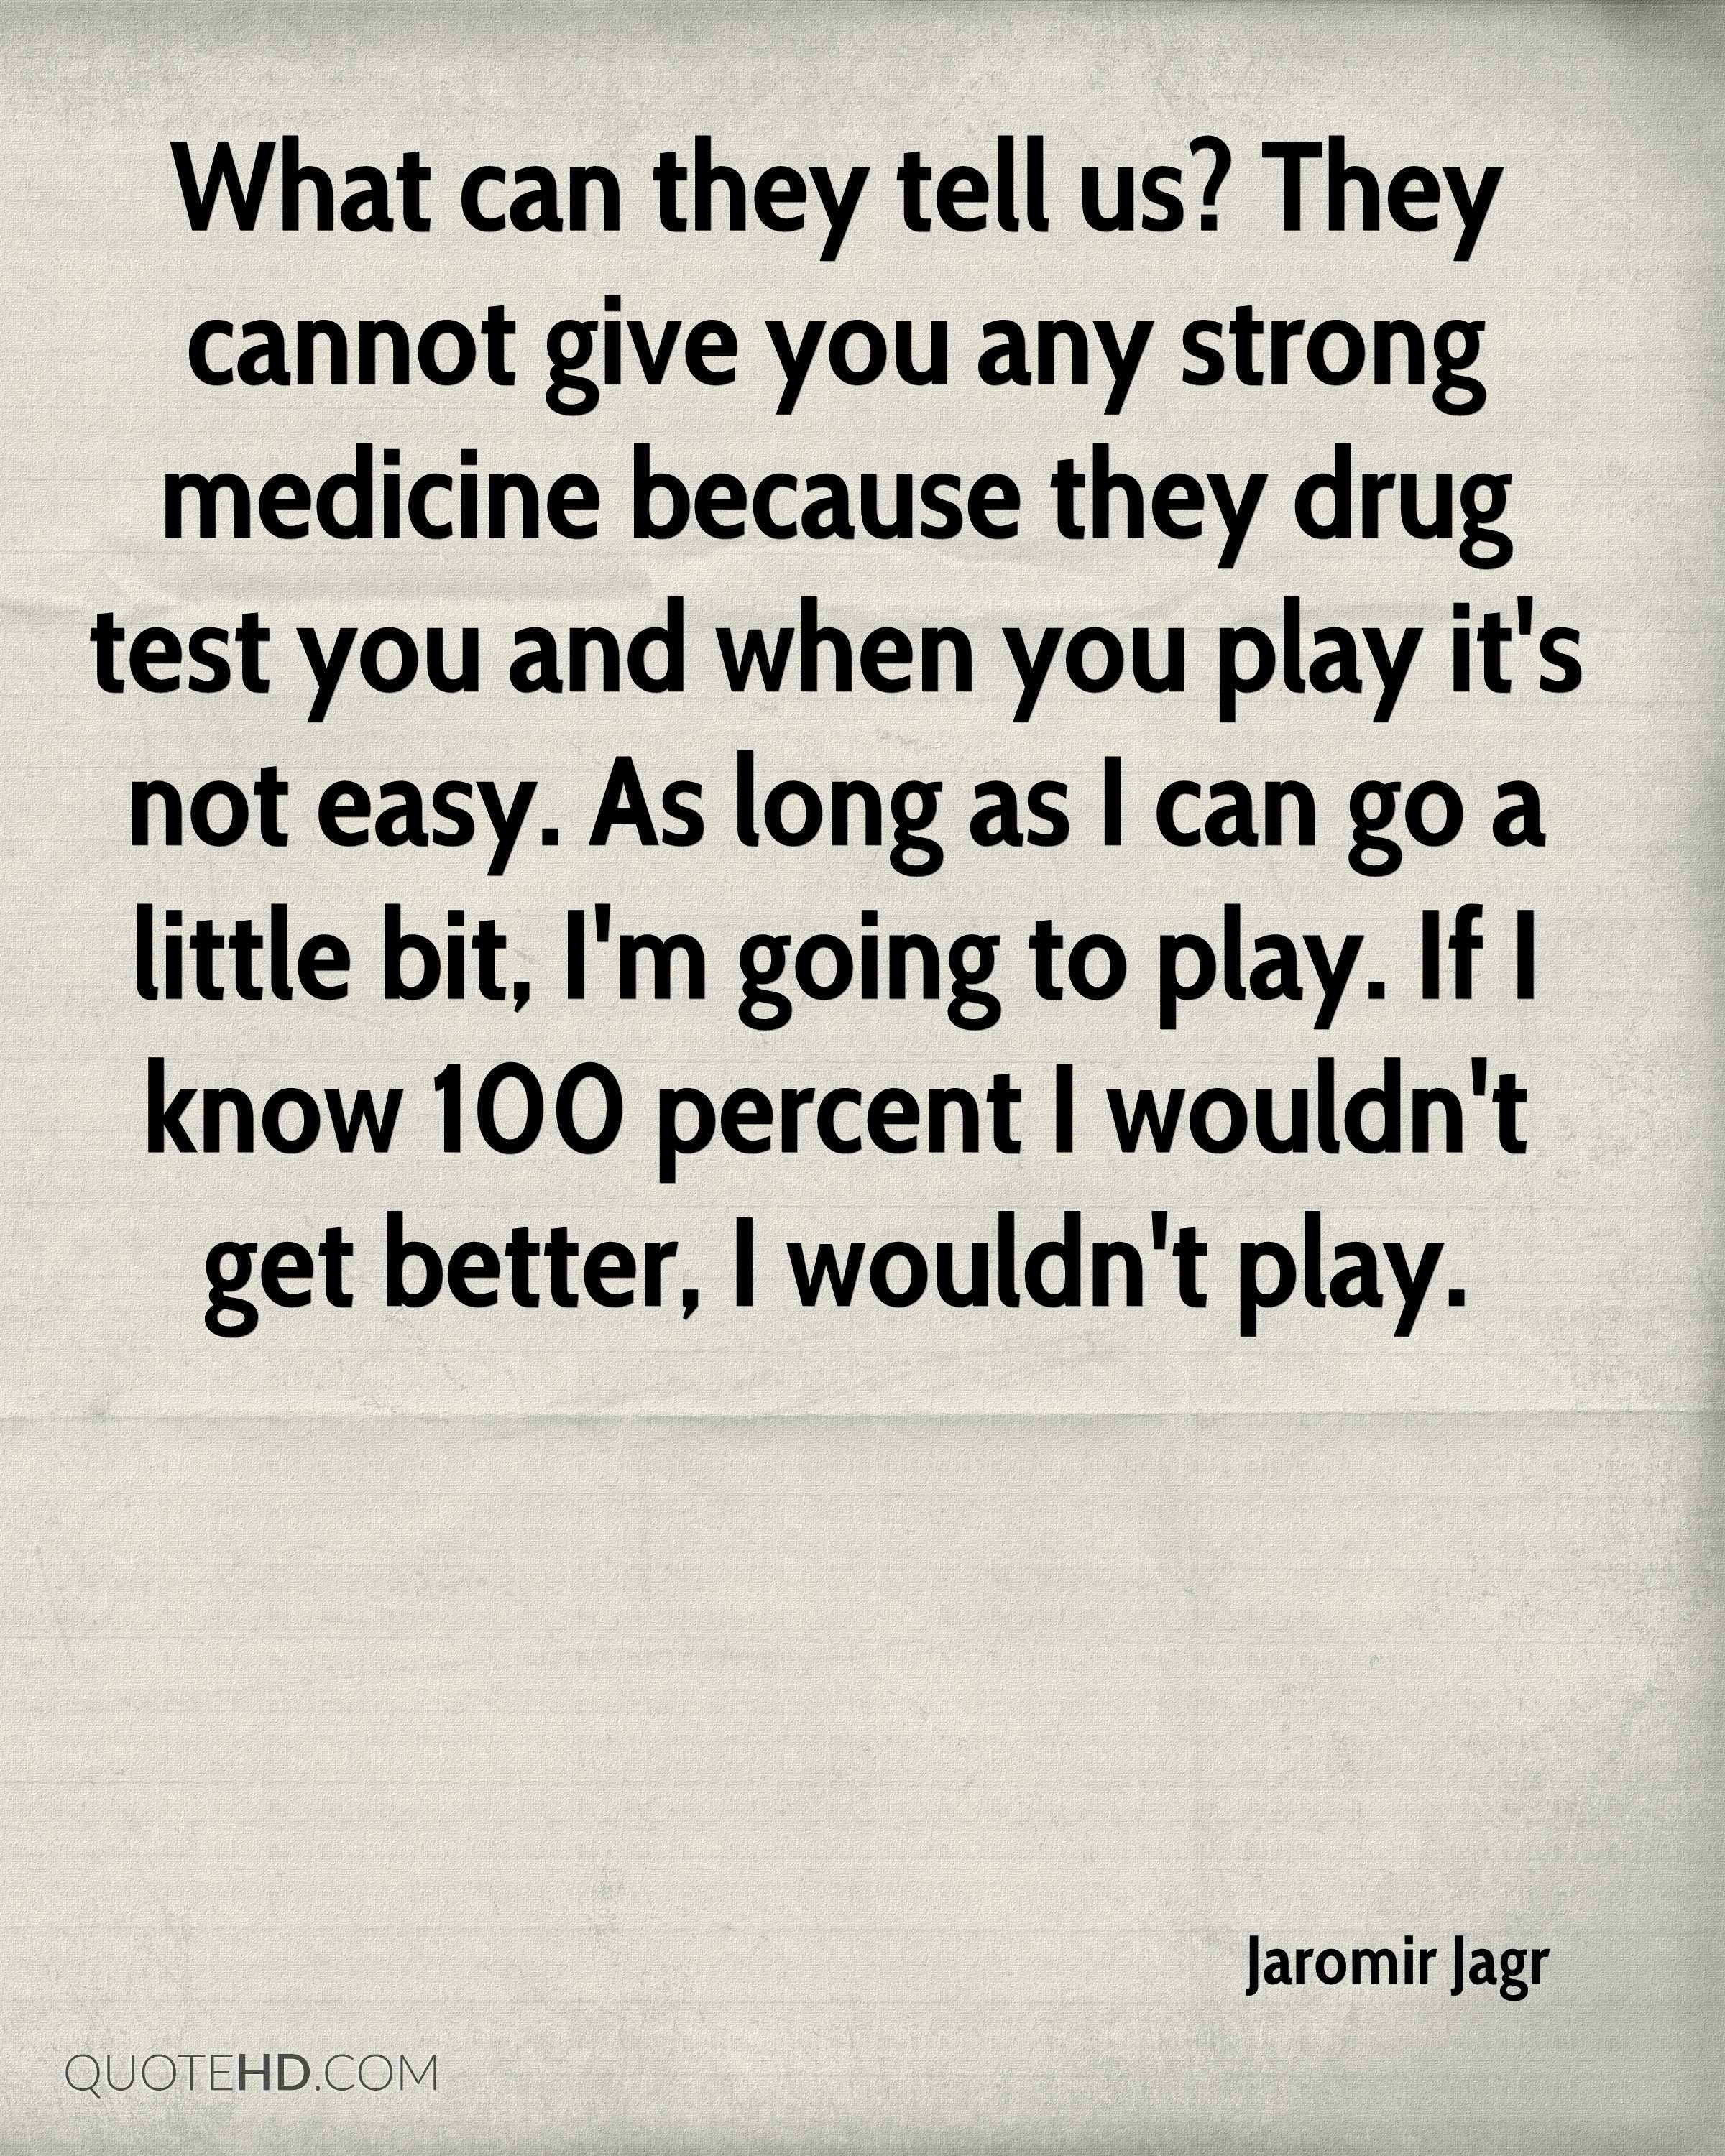 What can they tell us? They cannot give you any strong medicine because they drug test you and when you play it's not easy. As long as I can go a little bit, I'm going to play. If I know 100 percent I wouldn't get better, I wouldn't play.